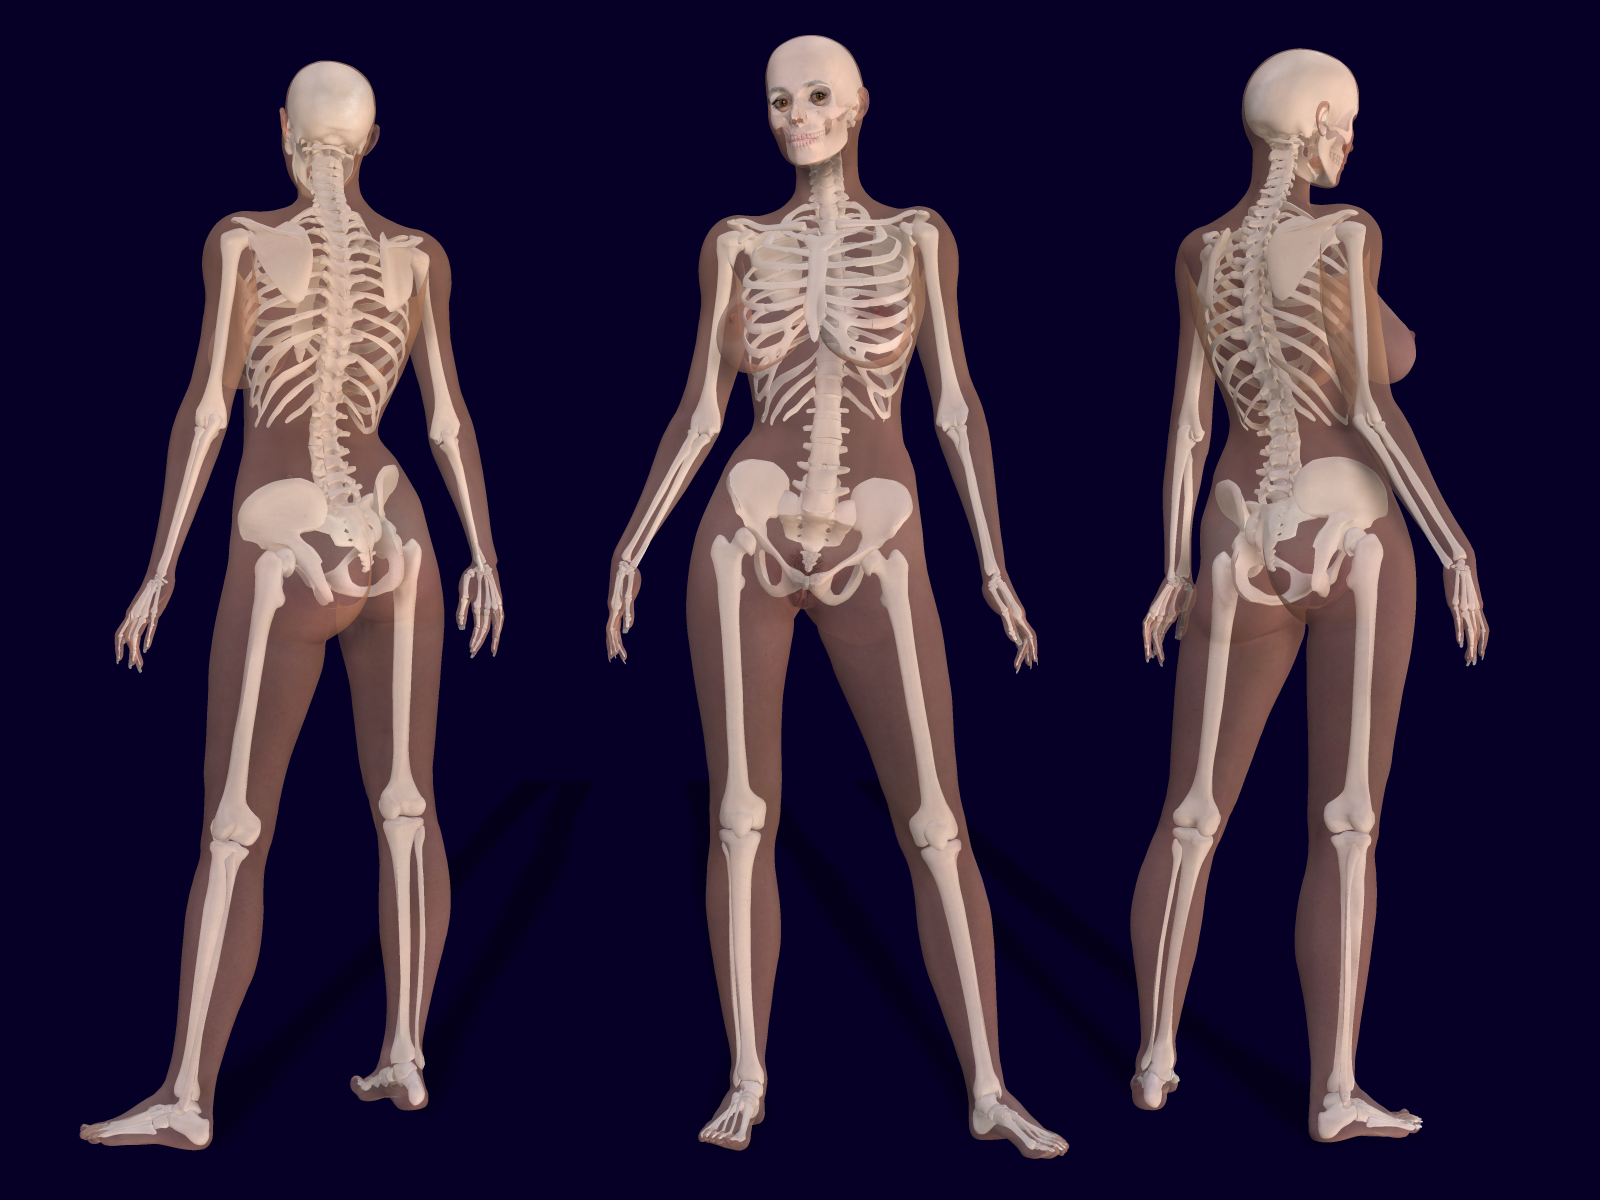 learn anatomy & physiology online | male torso, physiology and anatomy, Skeleton